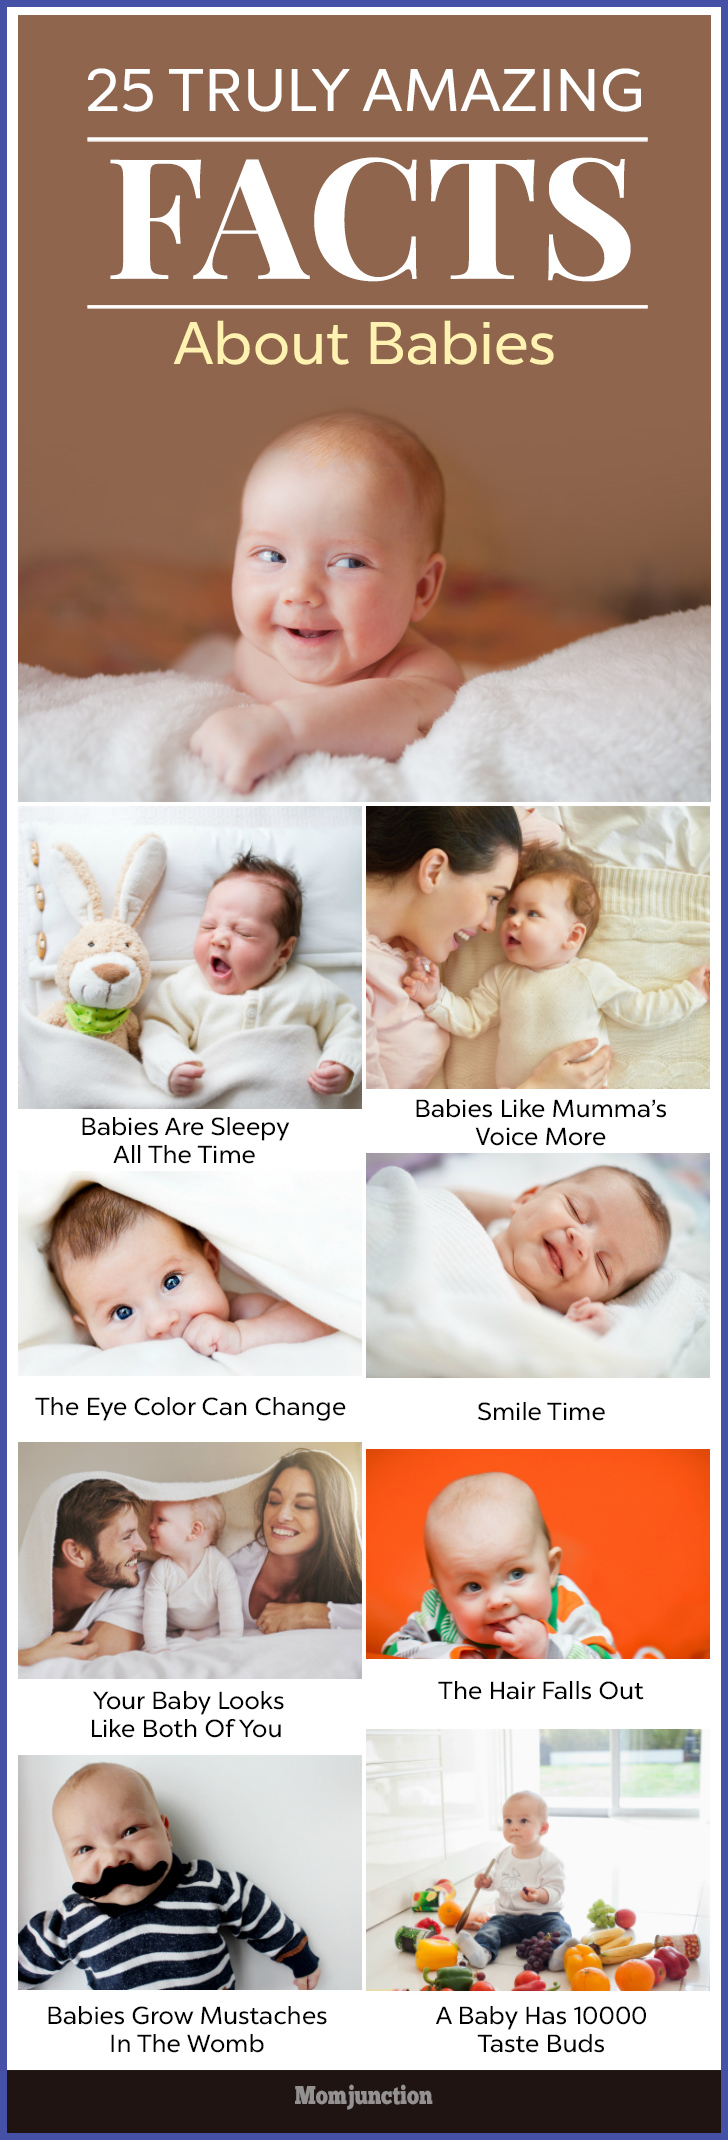 What determines a baby's eye color?